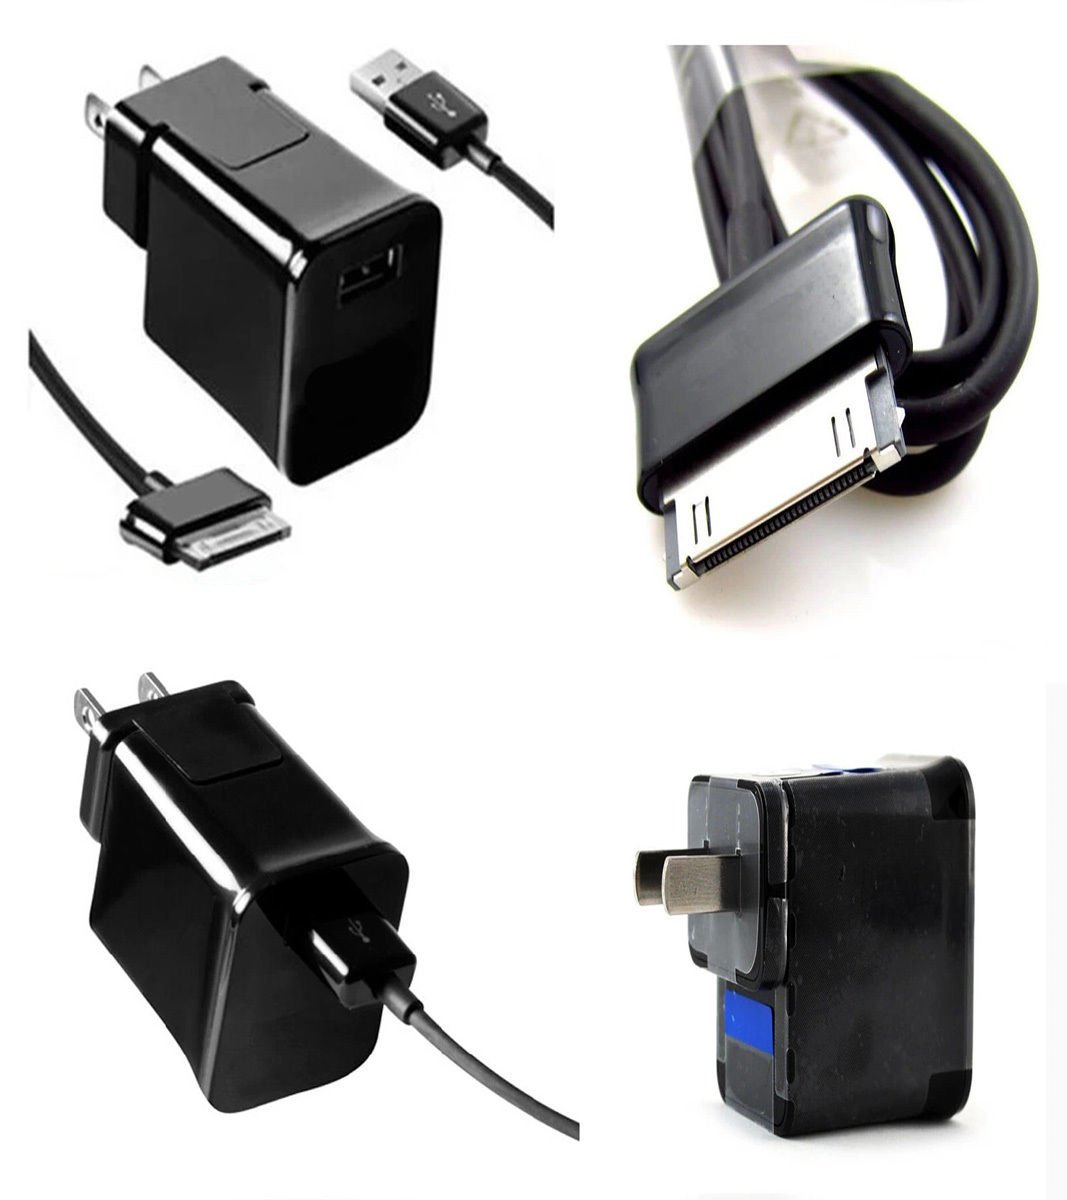 fyl OEM Cargador de pared USB Cable para Samsung Galaxy Tab ...